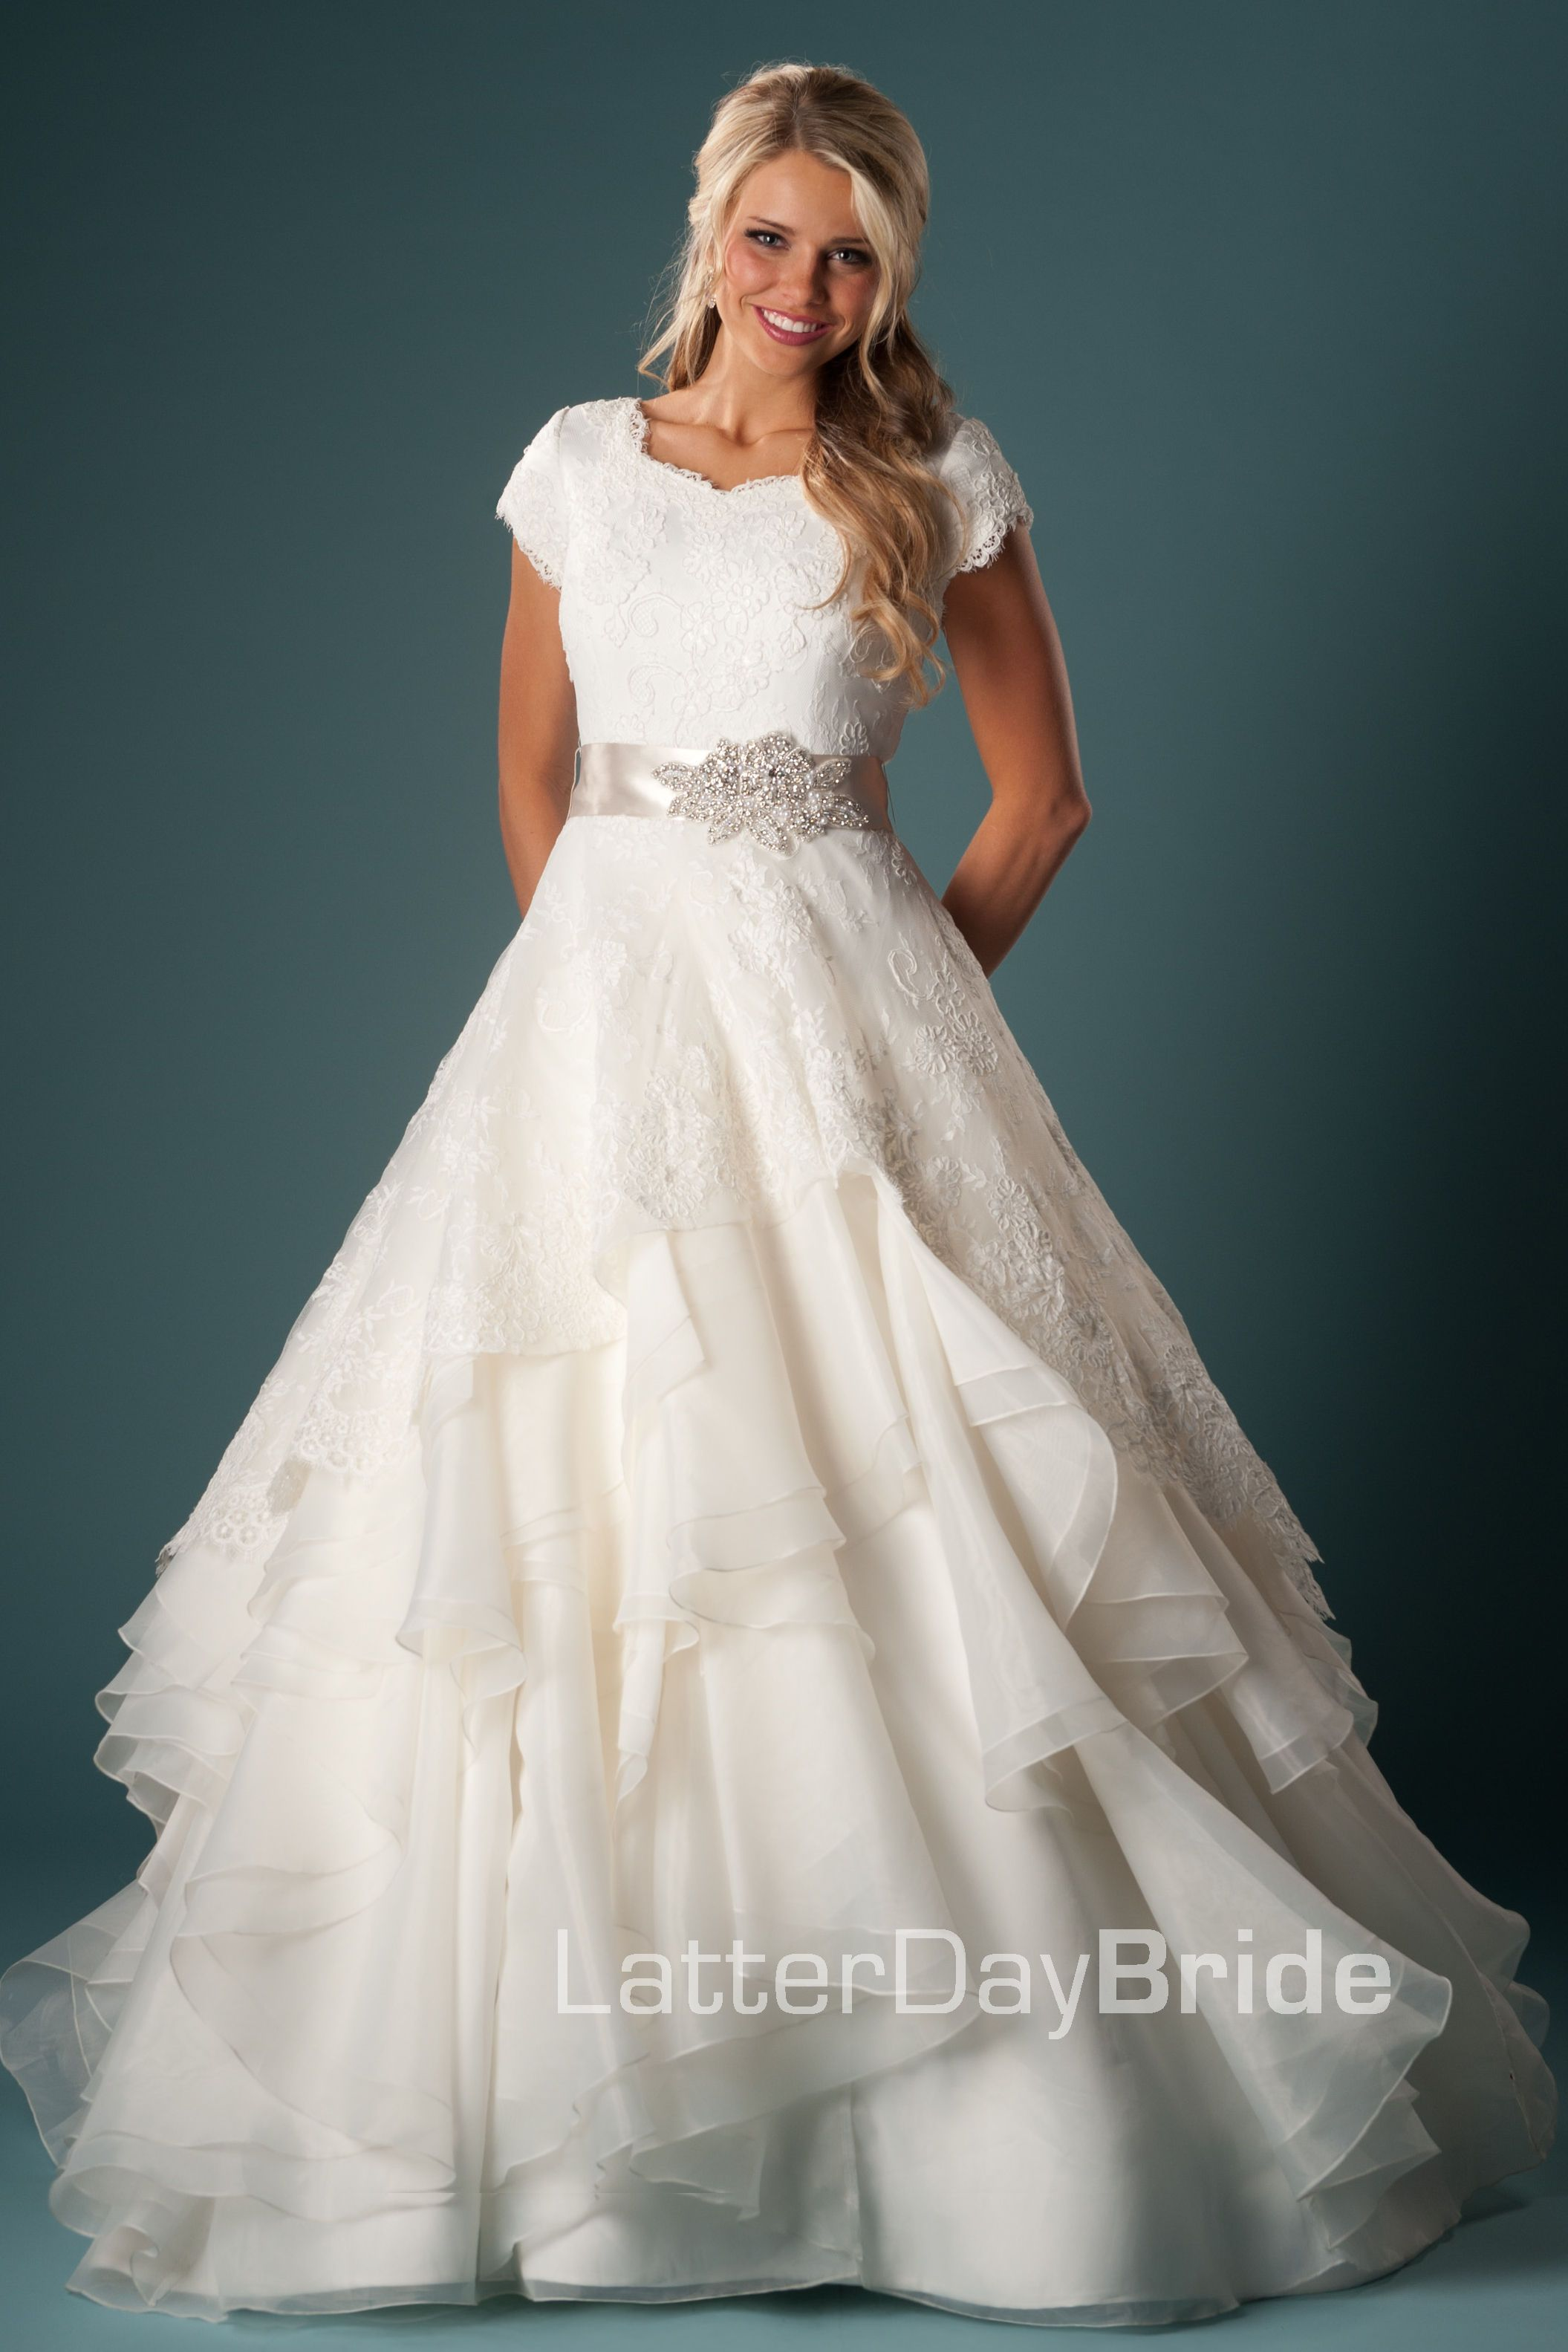 Very Pretty Skirt As Well Perfectly Modest Wedding Dress: Very Modest Wedding Dress At Websimilar.org